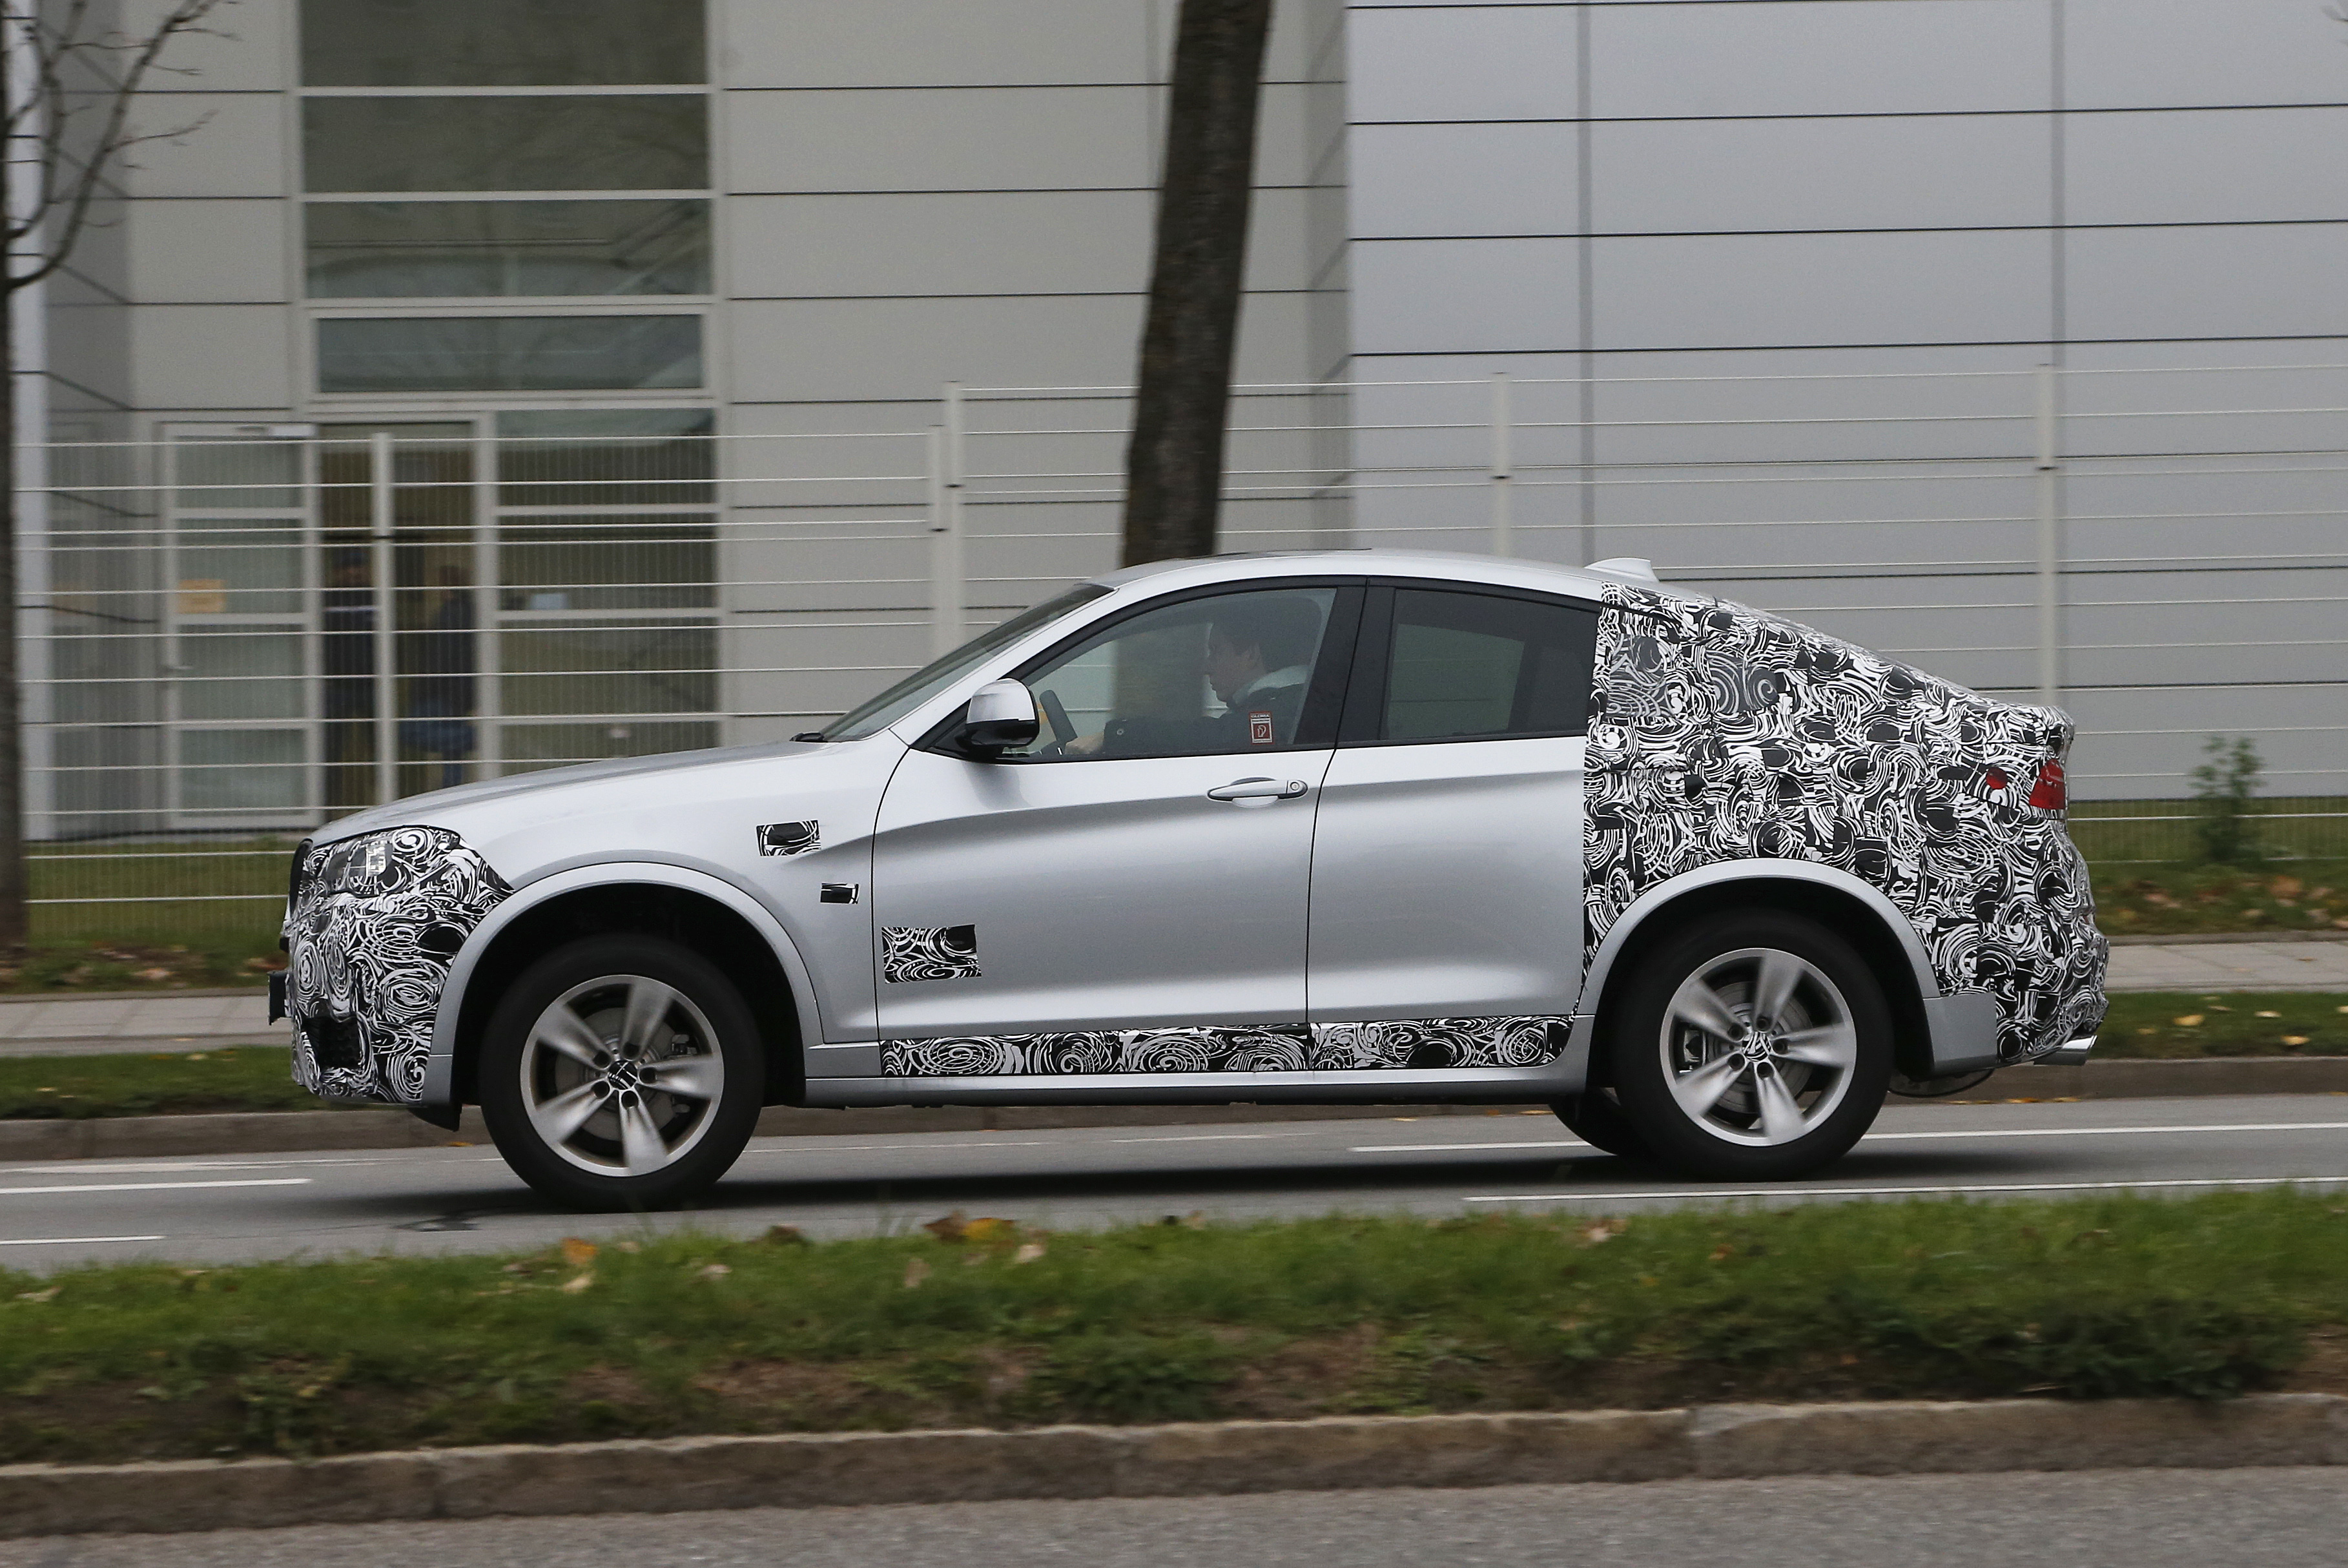 xbimmers bmw x3 forum latest bmw x4 f26 prototype pics with a look against x3. Black Bedroom Furniture Sets. Home Design Ideas